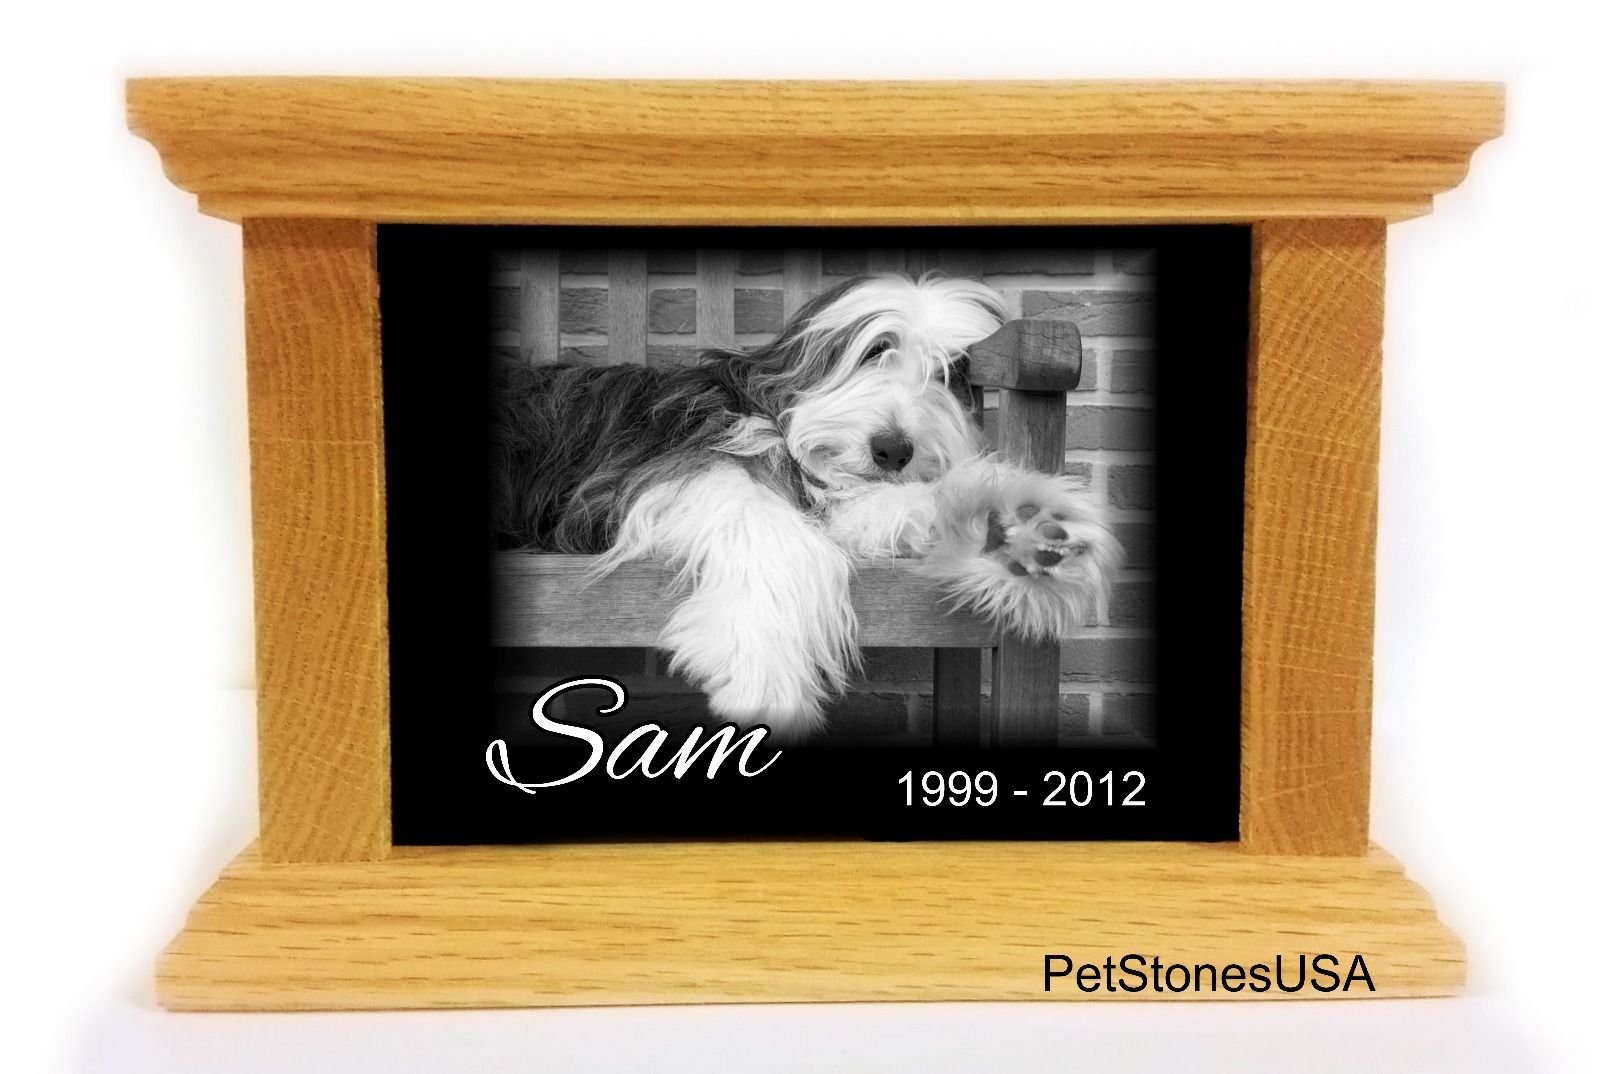 Pet Cremation Urn Oak Wood Box Photo Memorial Granite Any Animal up to 65 Pounds Personalized Personalised by Pet Stones USA (Image #5)